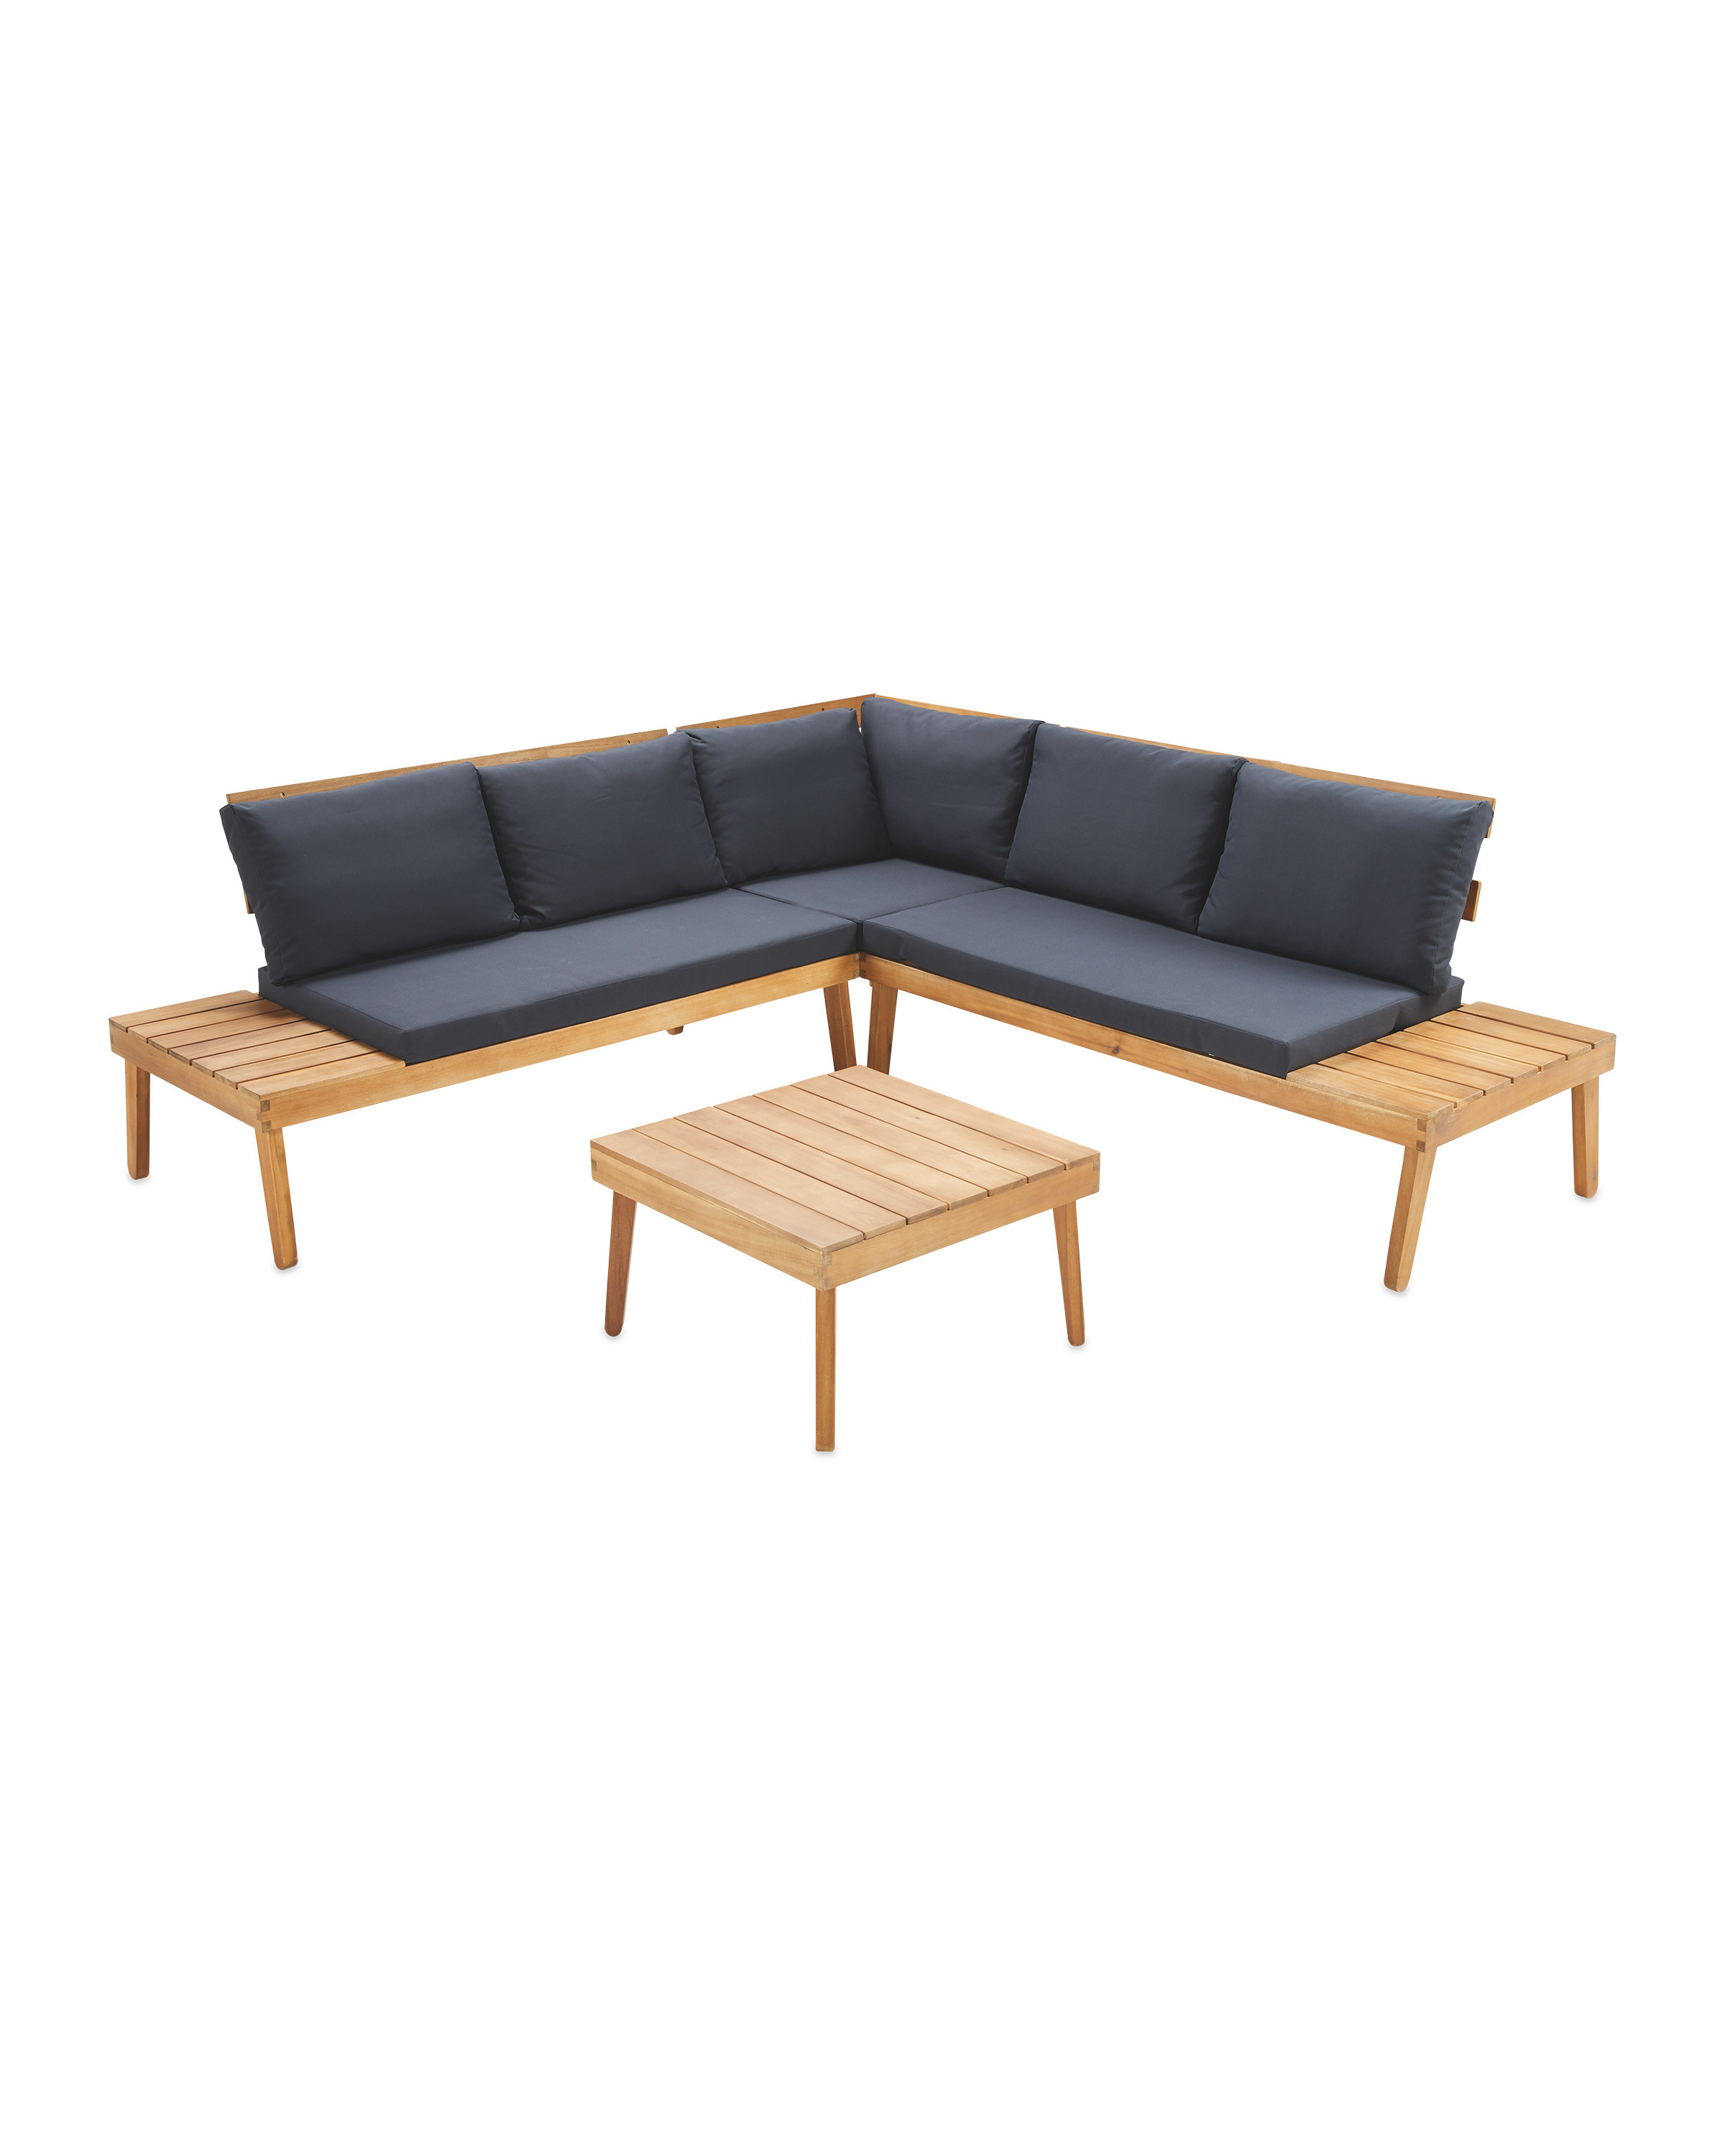 Large Wooden Sofa & Table Set